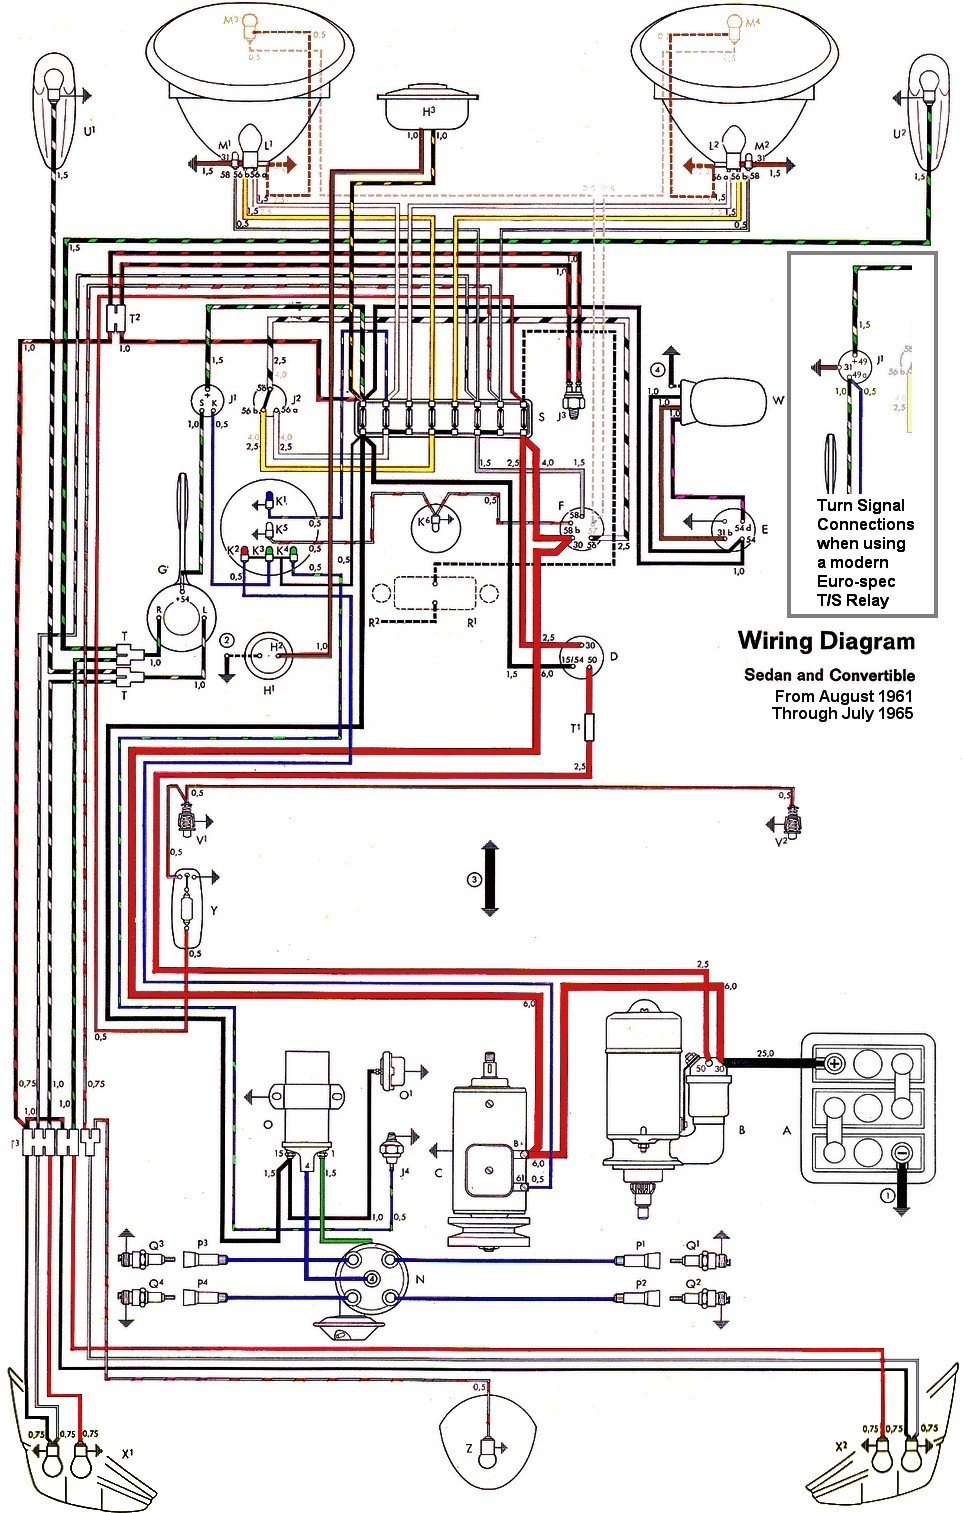 bug_62 65withinset thesamba com type 1 wiring diagrams 1970 vw bug wiring diagram at pacquiaovsvargaslive.co